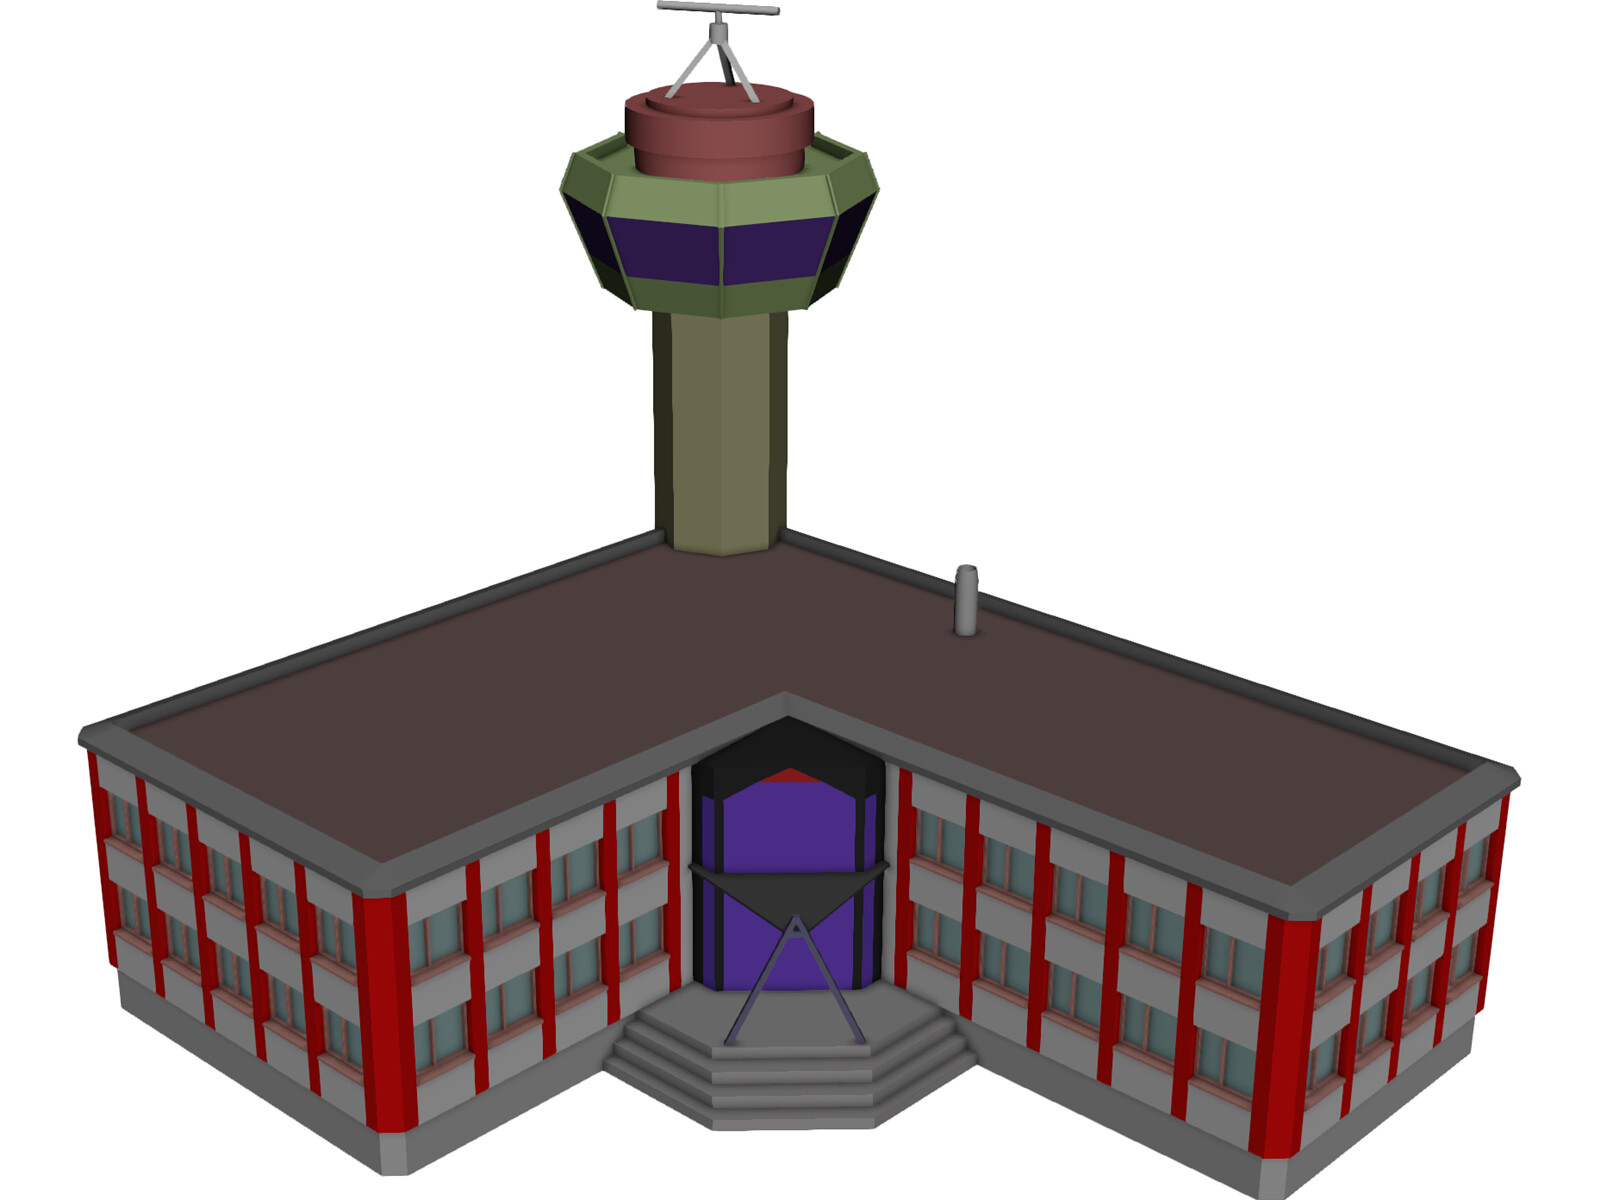 Control Tower with Airport Building